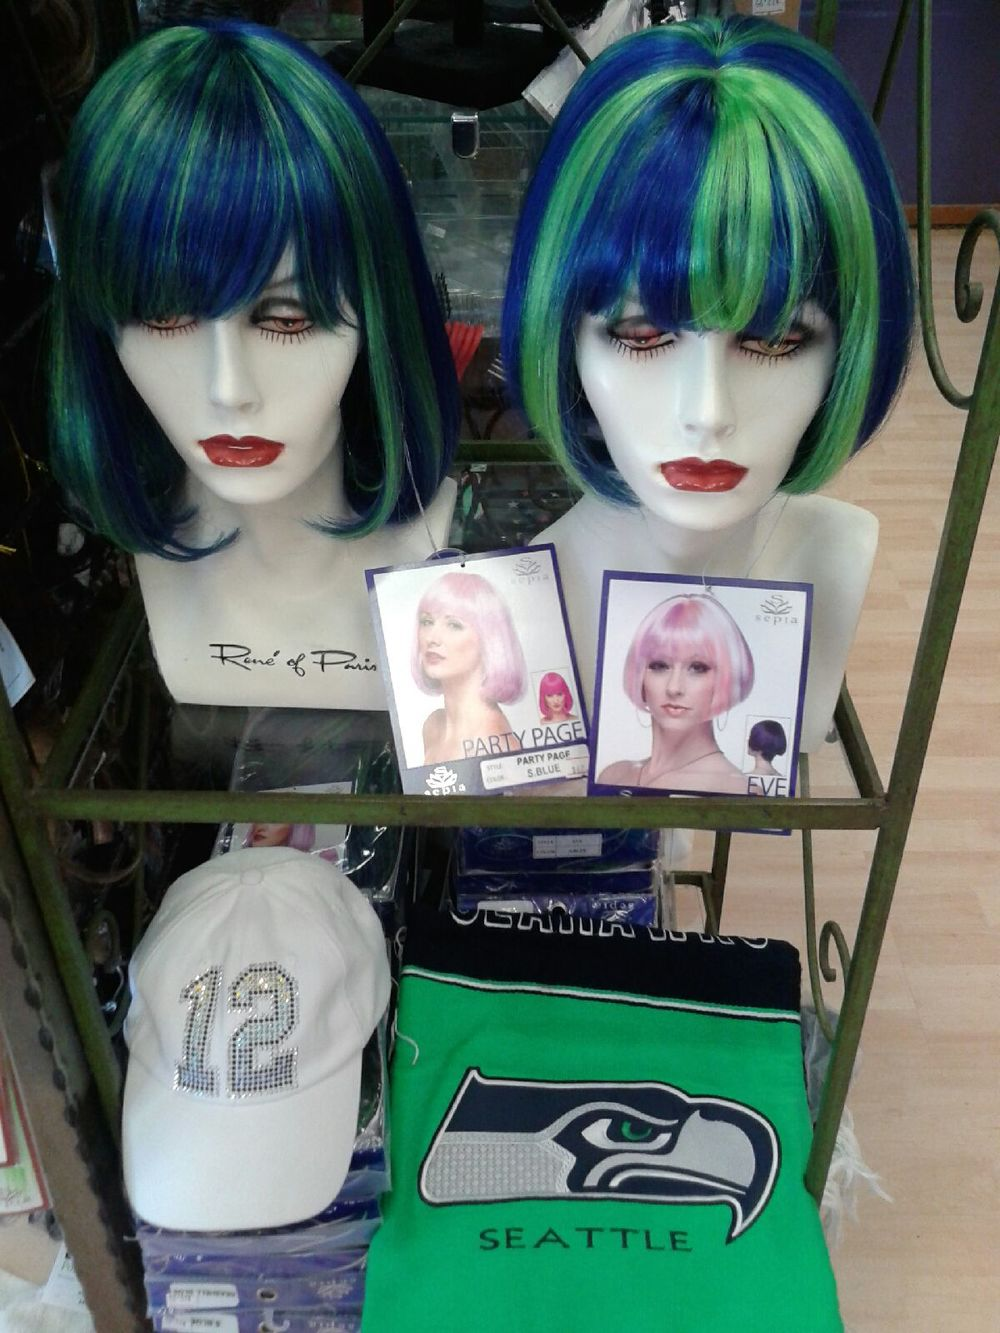 Stop by today and pick up a beautiful wig in Seahawks colors or other unique fan gear bling for the next big game!  sc 1 th 259 & Savvy Wigs